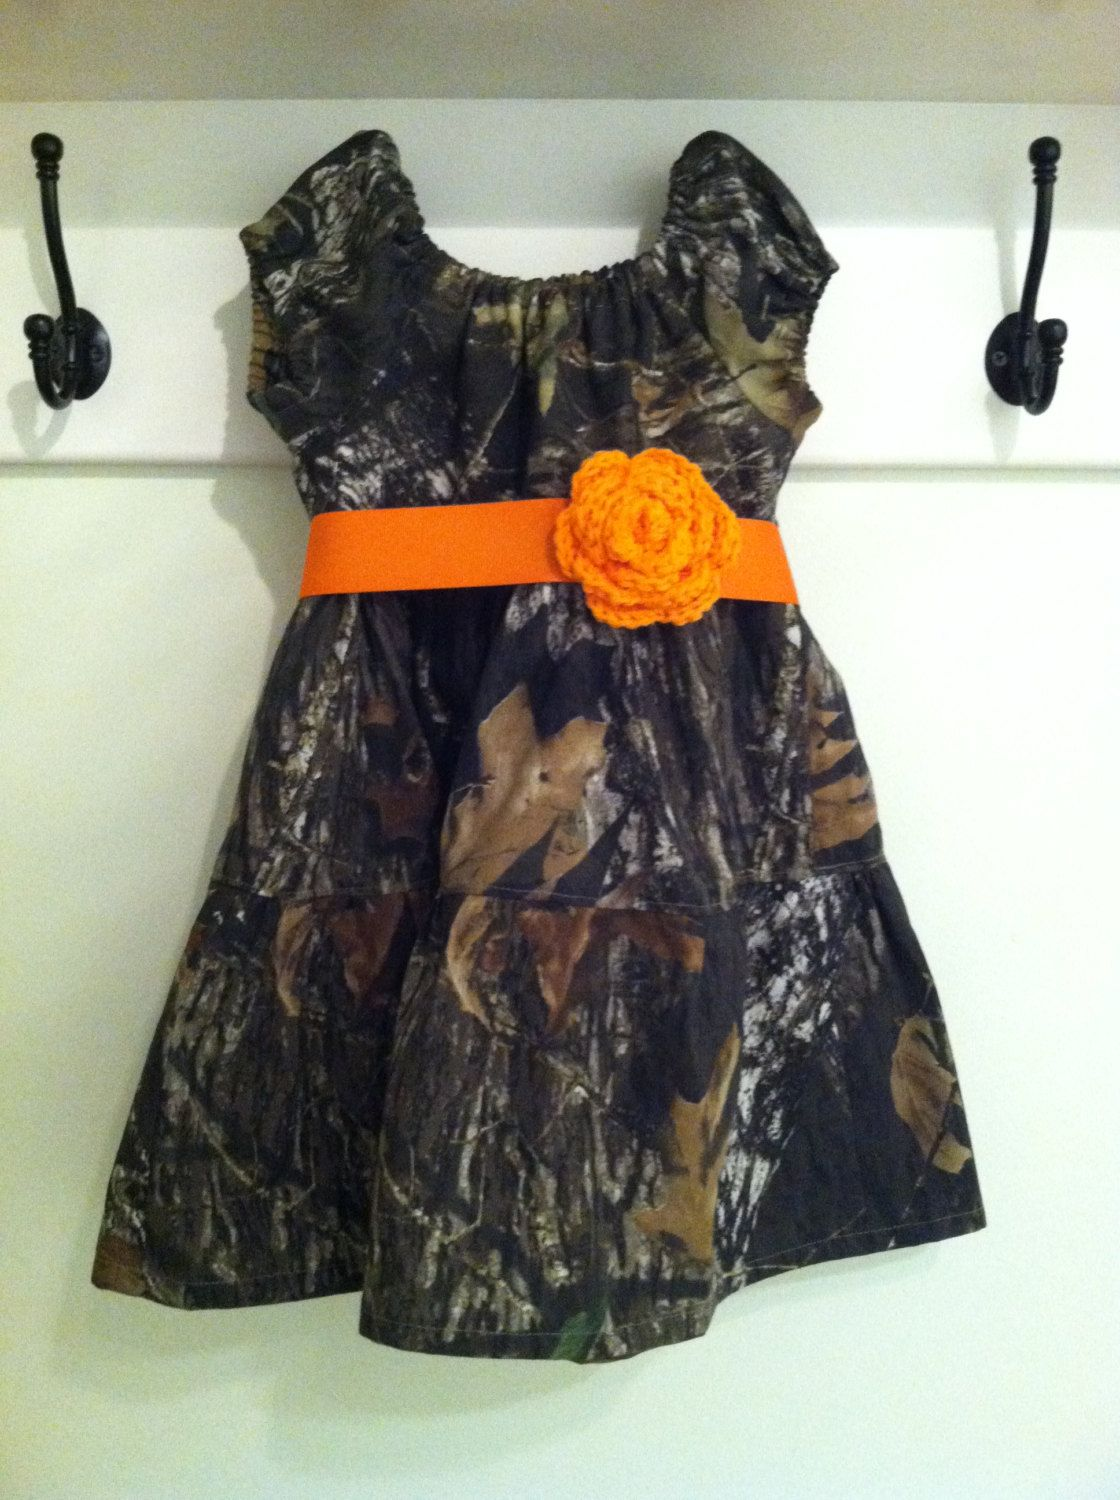 Flower girl dresses girls camo peasant style dress size to